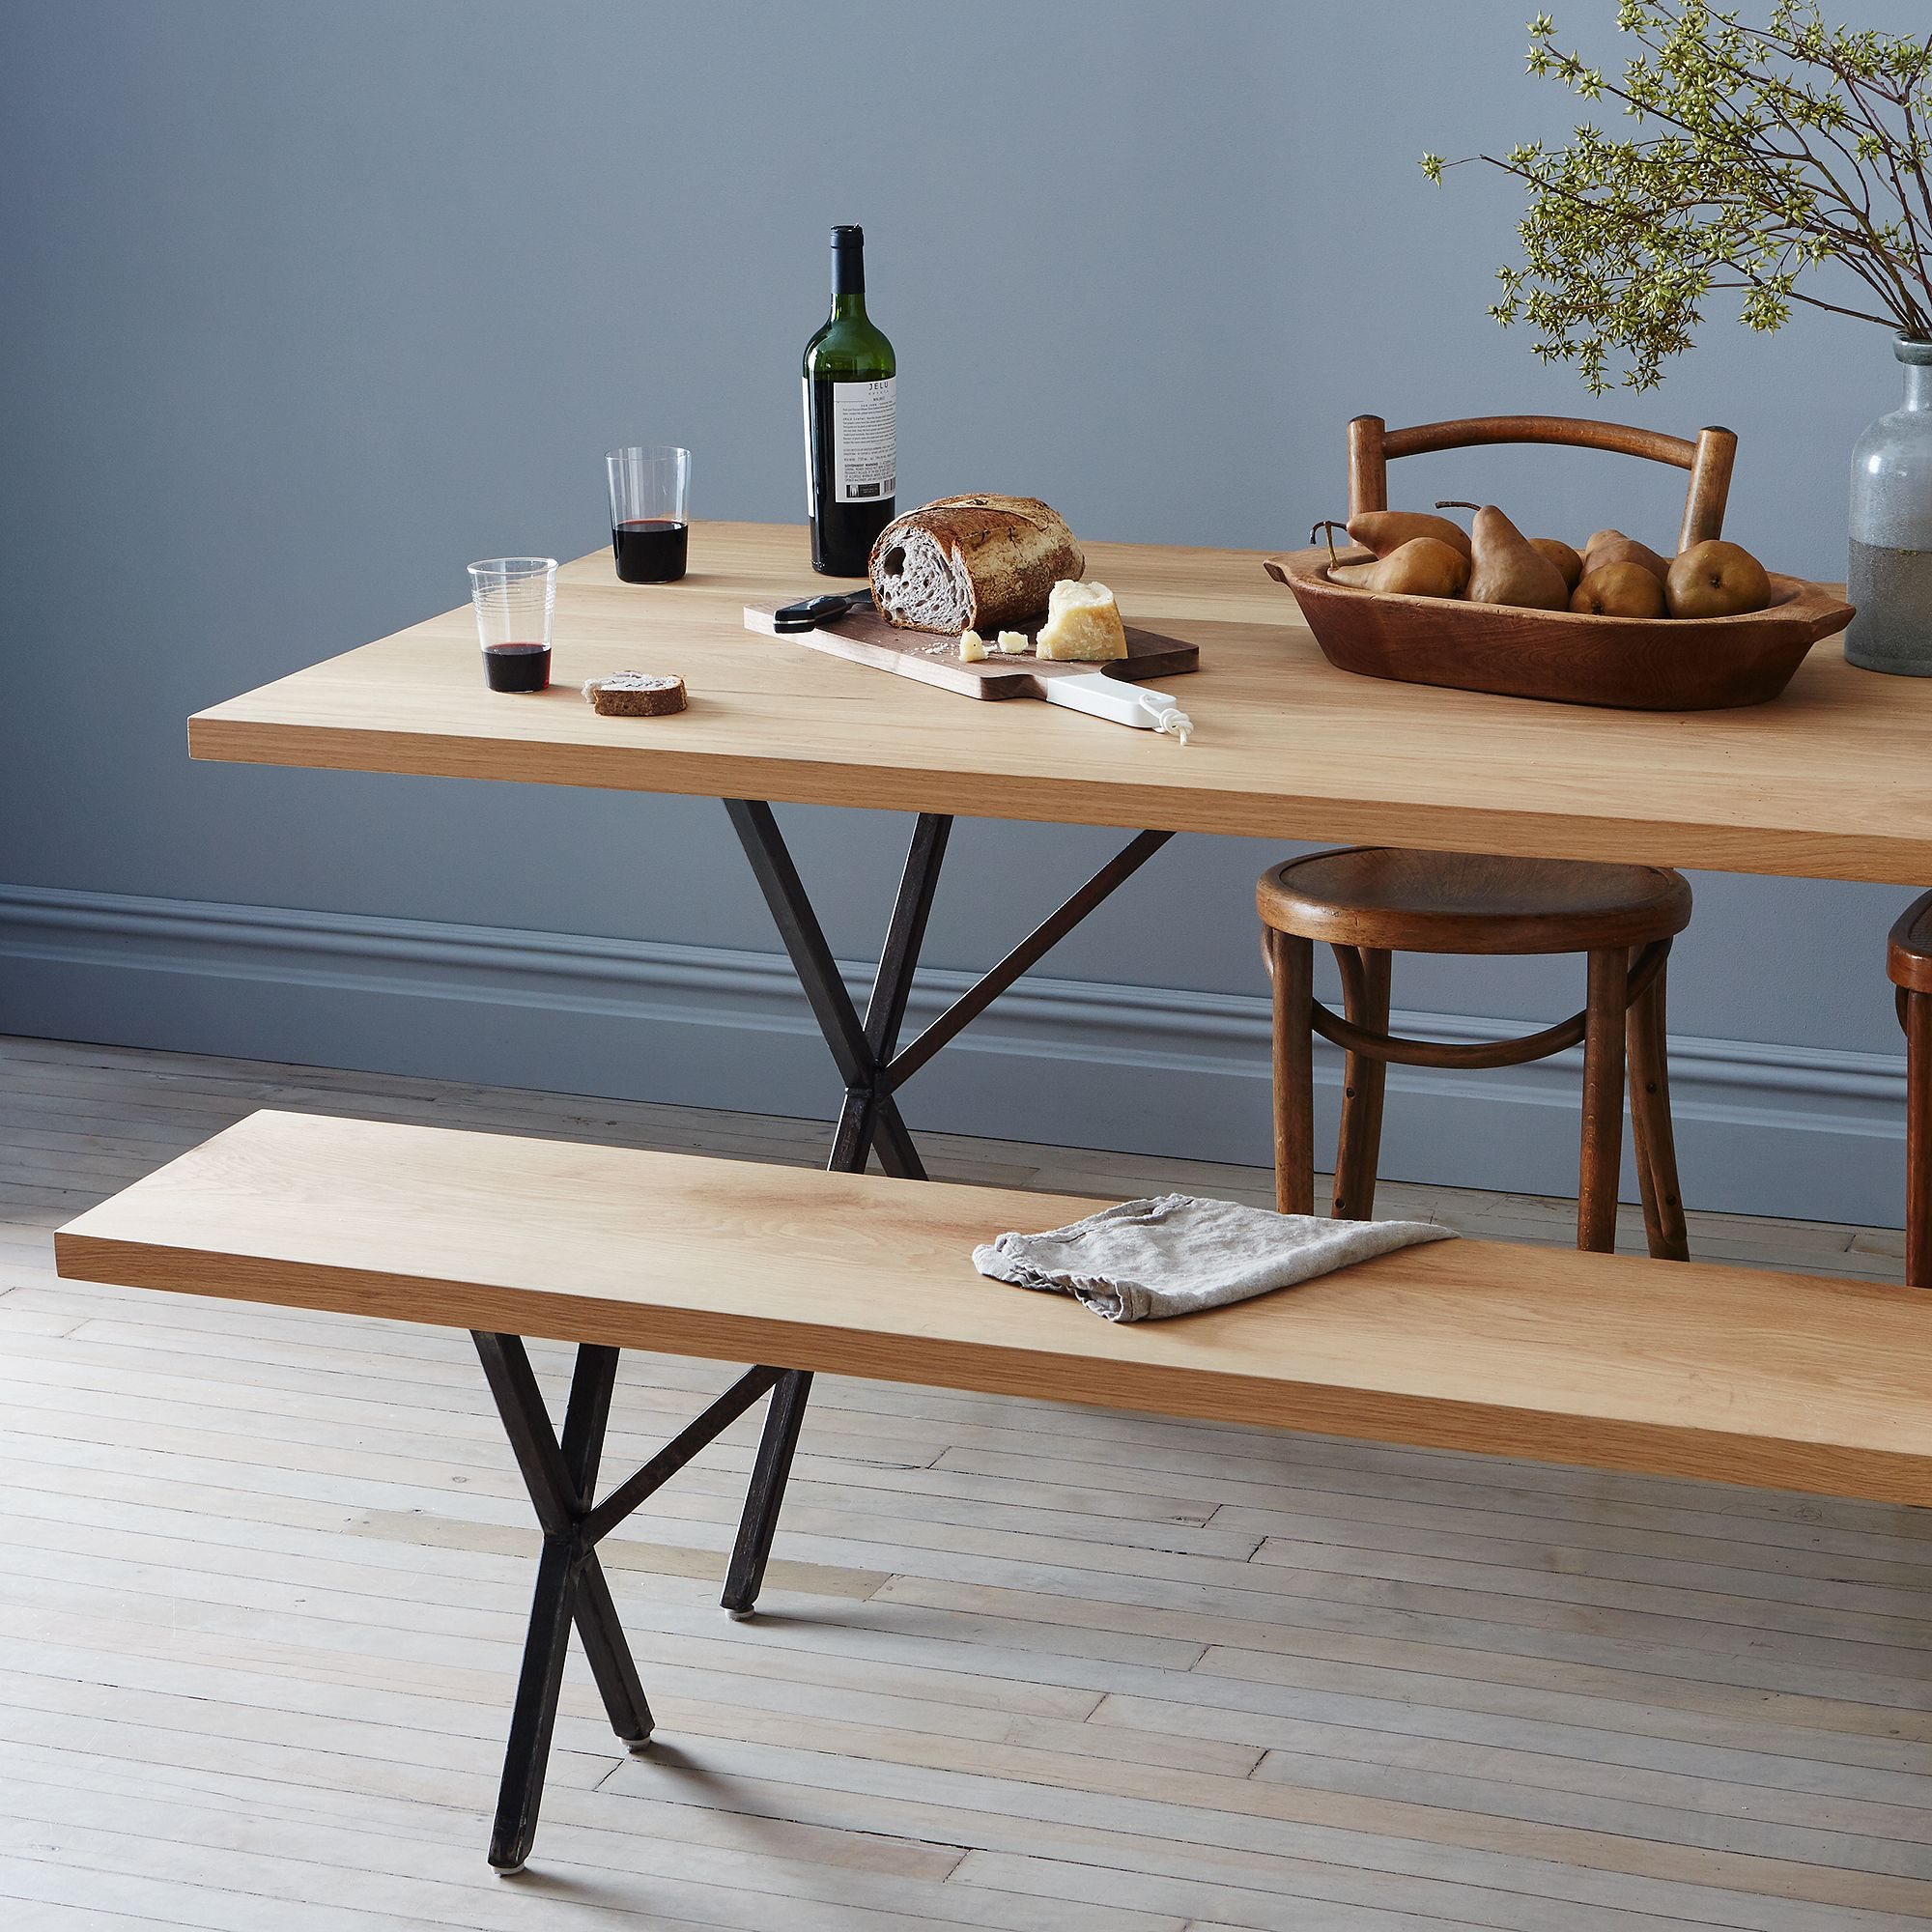 contemporary bench rotsen furniture ebay reclaimed rustic alluring australia p marvelous farm table homebase metal coffee with storage drawers wood tables solid mango console